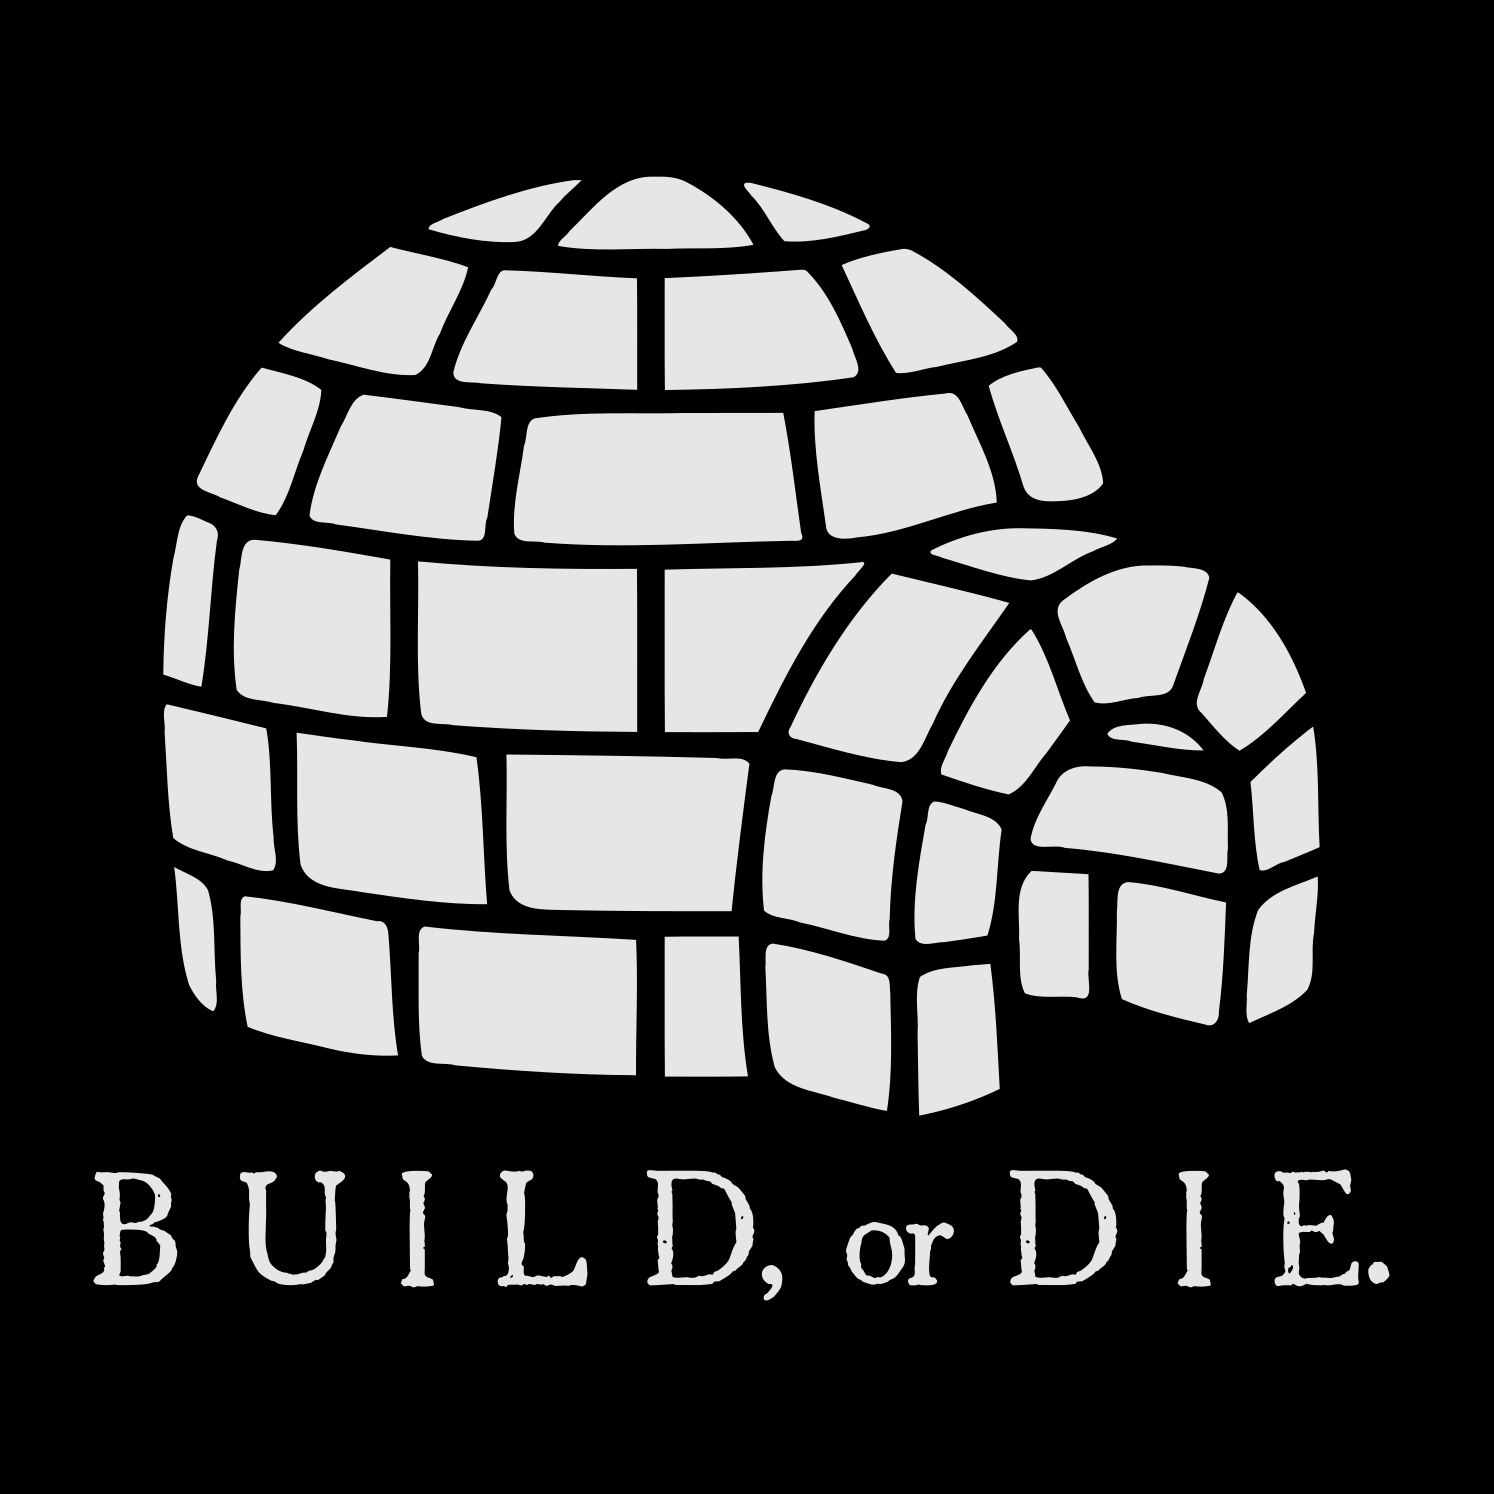 Build or Die - T-shirts and more...